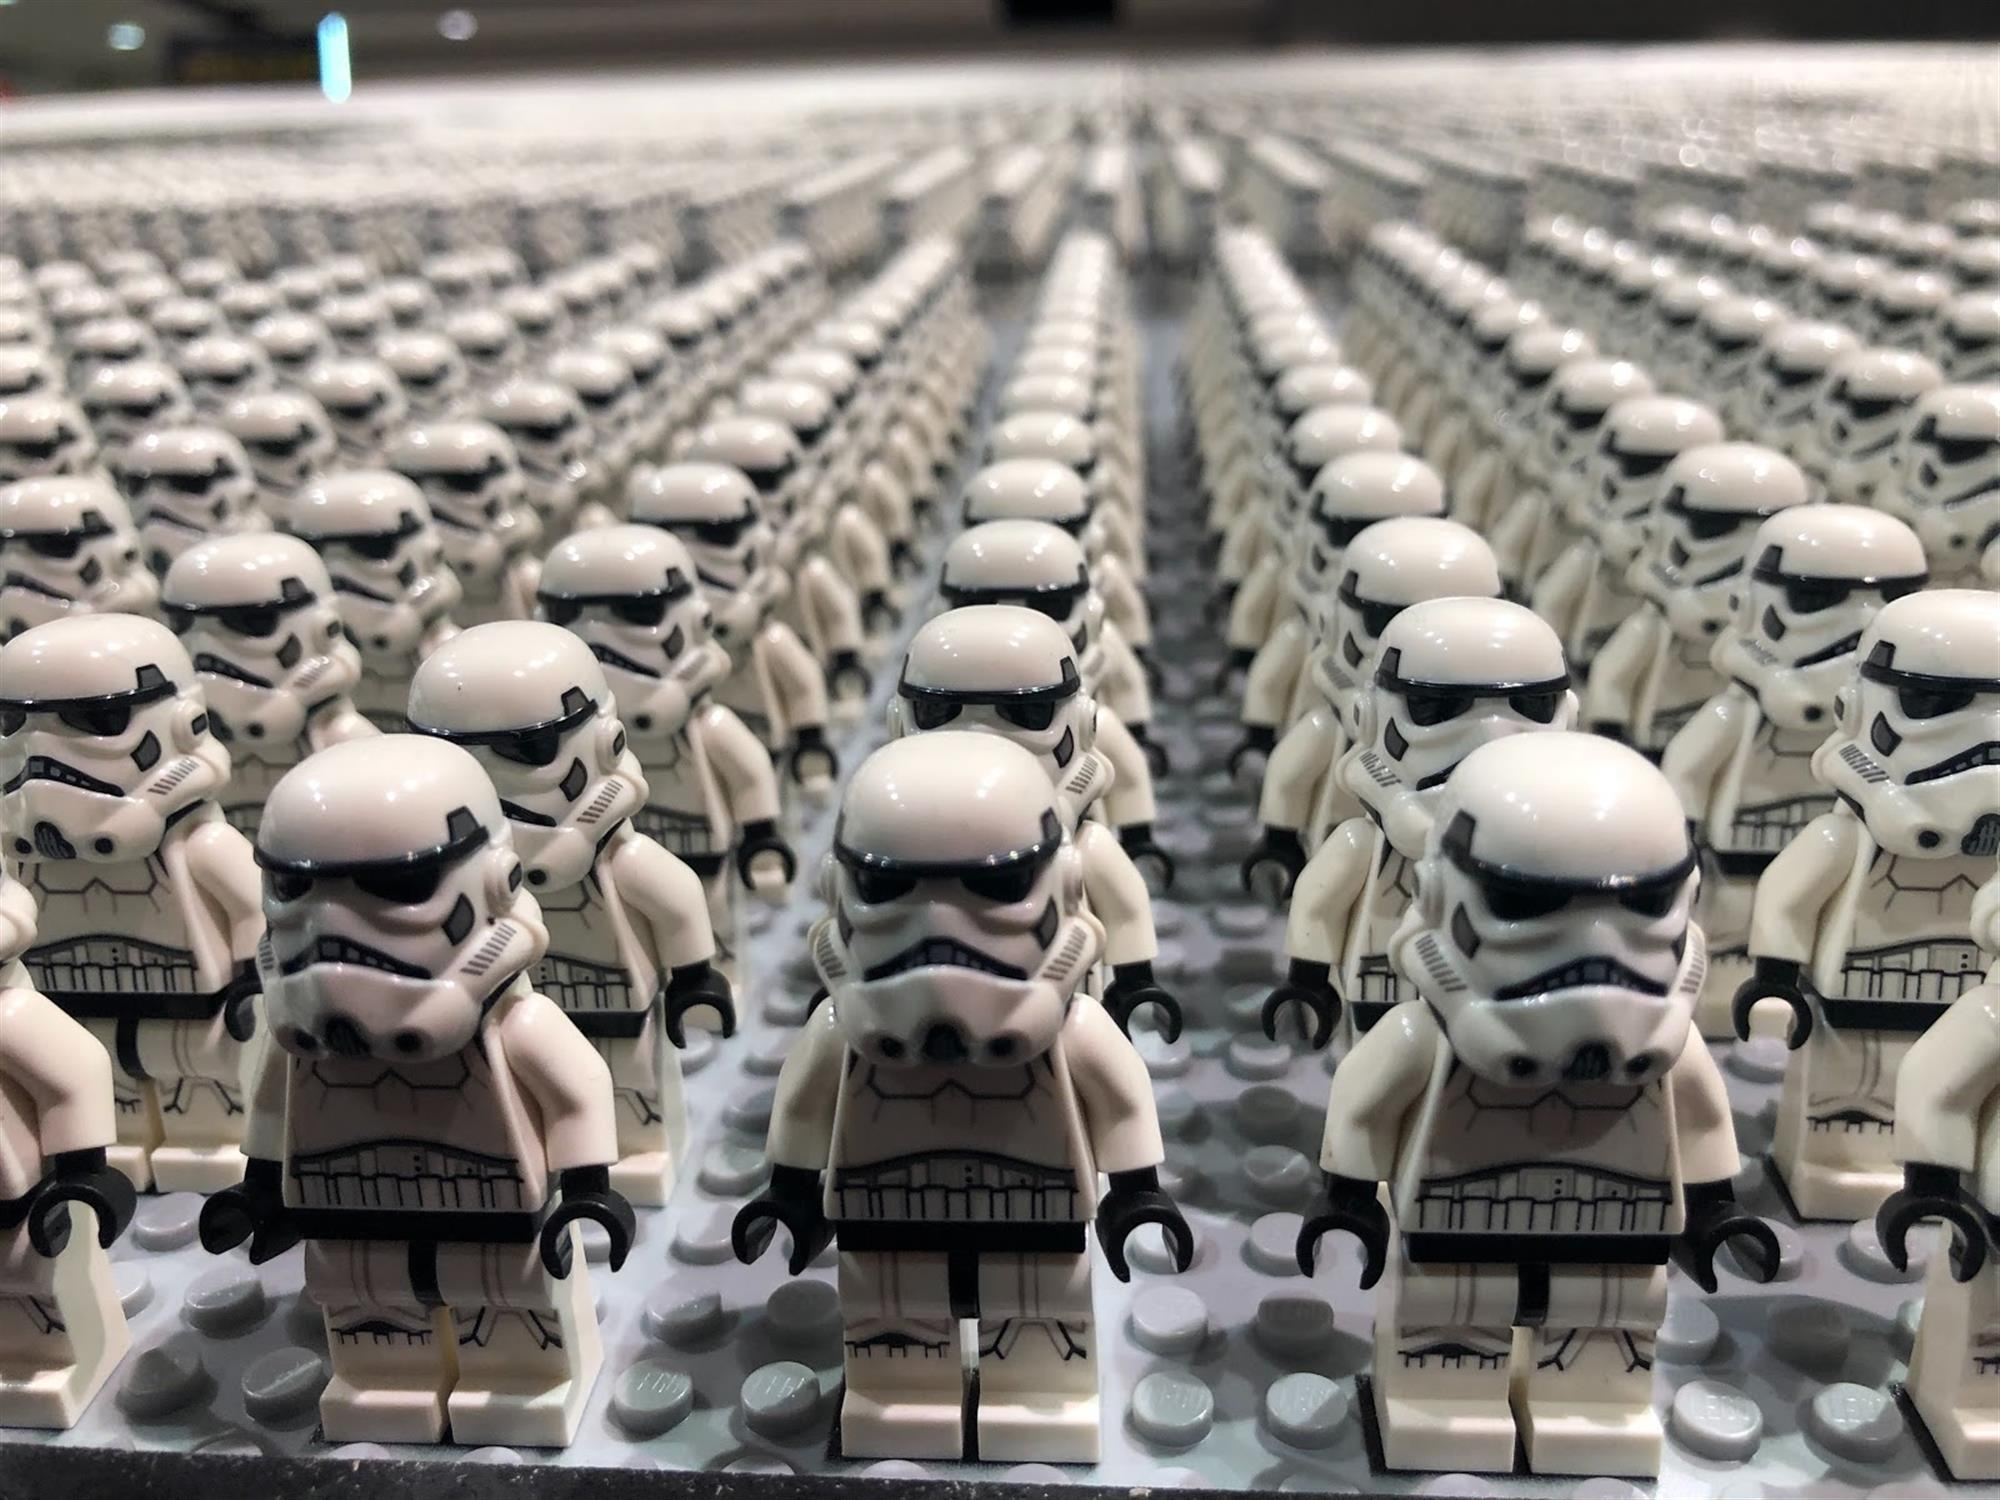 Lego Sets World Record With Stormtrooper Army Build At Star Wars